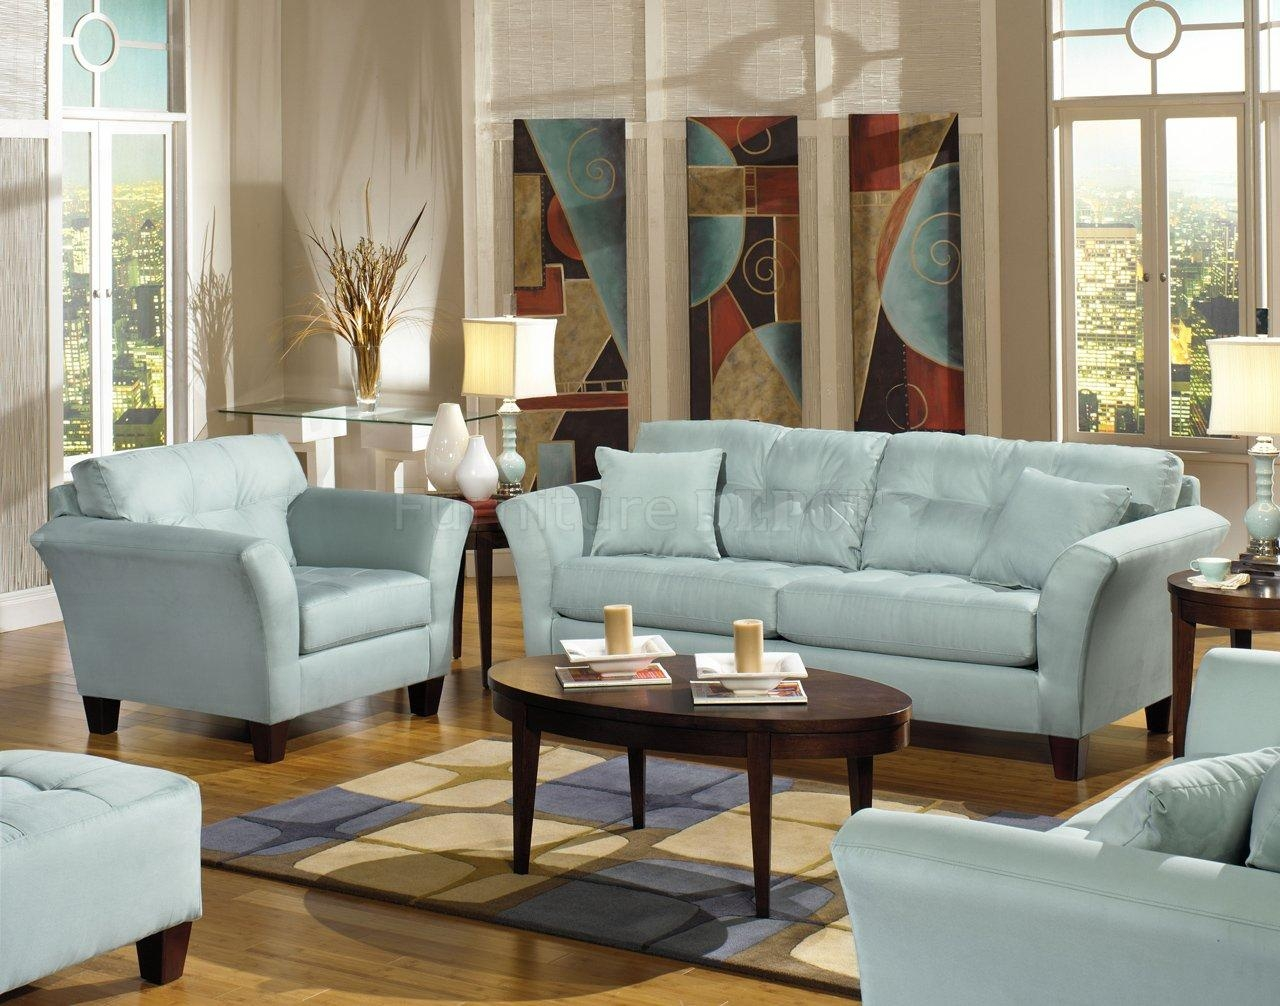 ▻ Sofa : 34 Living Room Living Room Sets For Sale Wonderful Within Sky Blue Sofas (View 3 of 20)